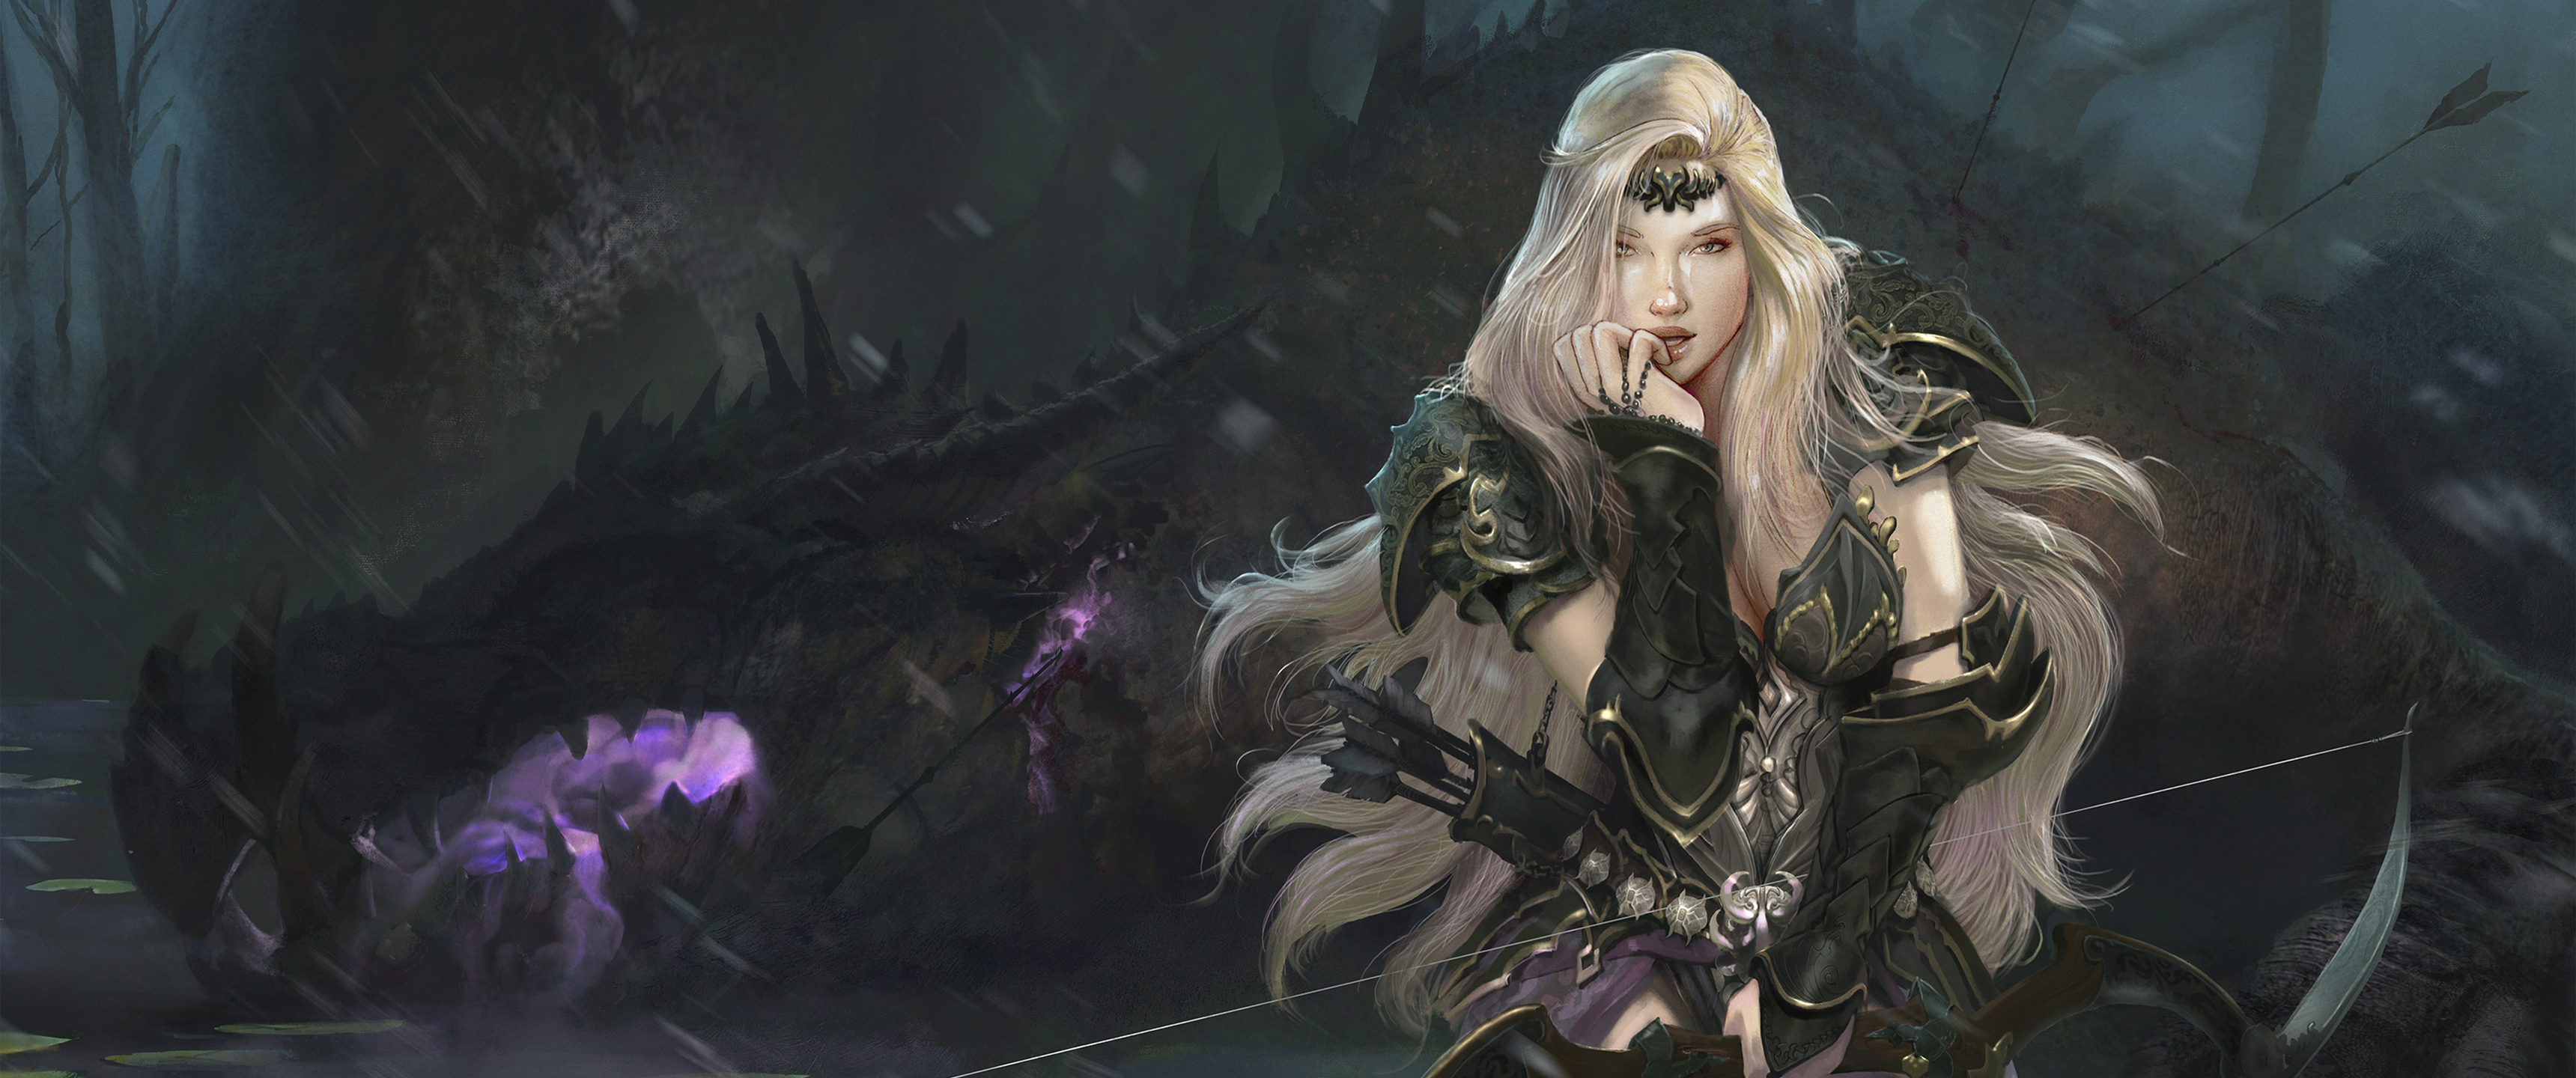 General 3440x1440 Girl With Weapon fantasy girl fantasy art blonde archer bow long hair